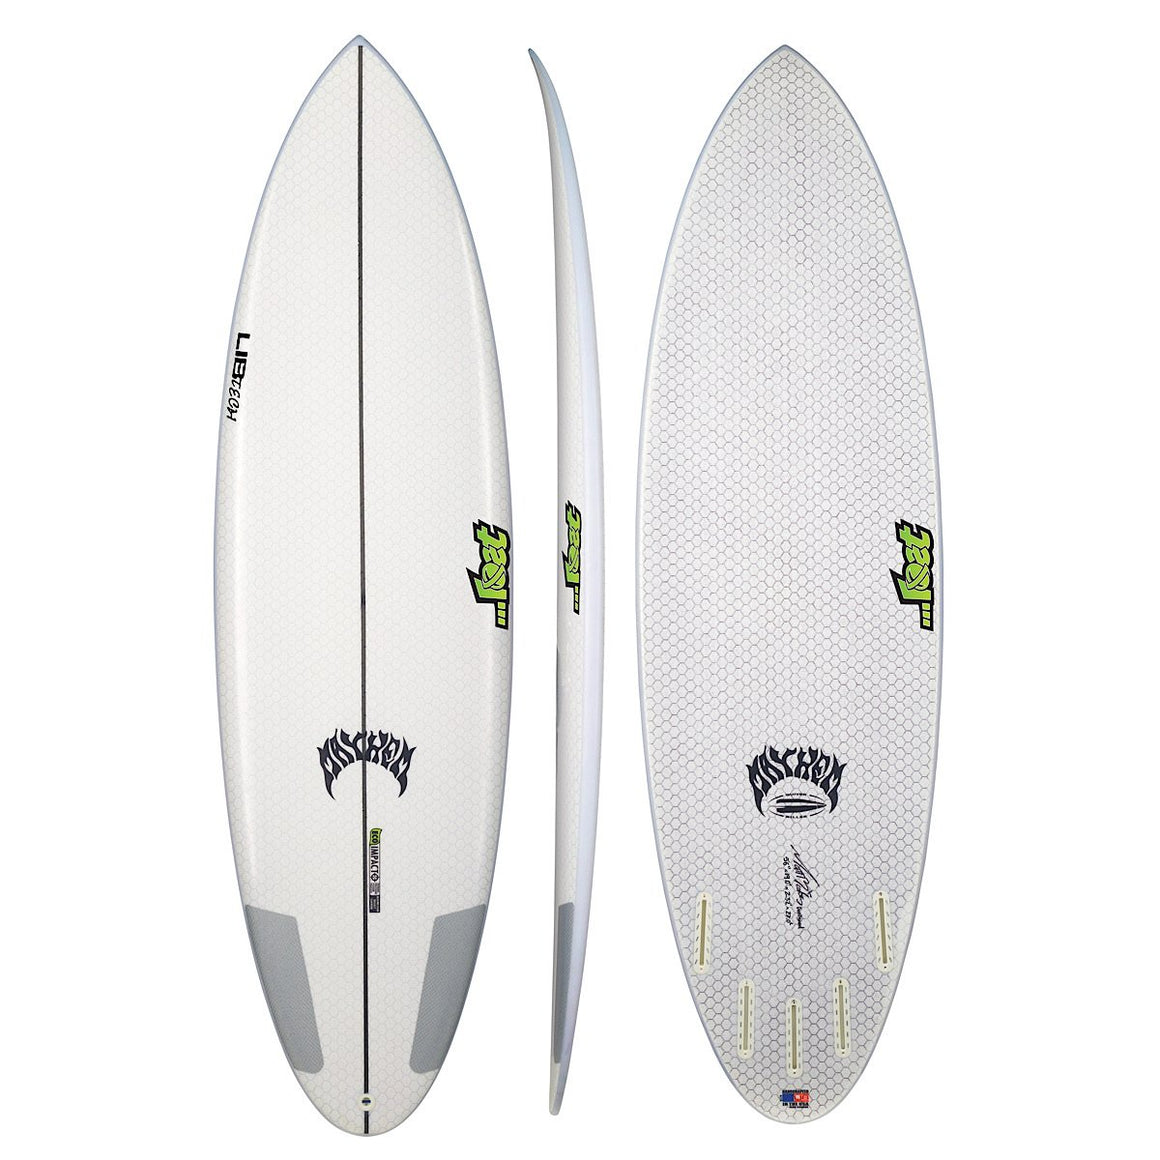 Libtech - Lost Quiver Killer 6'0 (FCSII compatible)